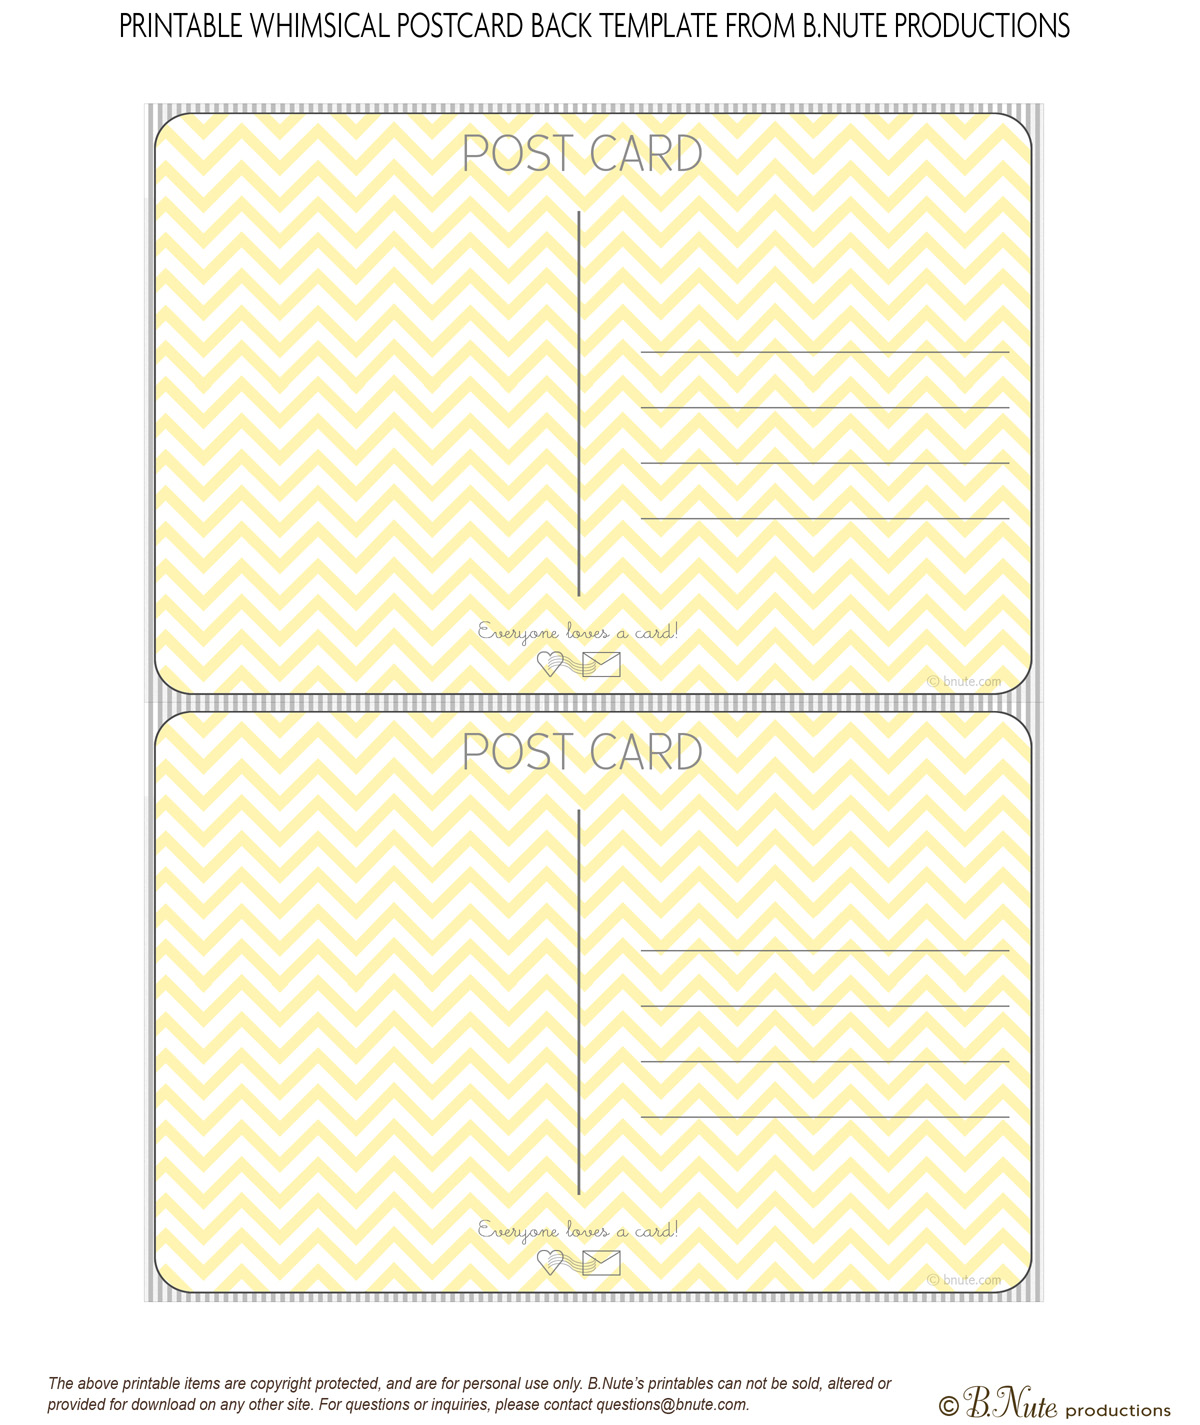 Printable Postcard Template Peellandfmtk - 5x7 postcard template for word